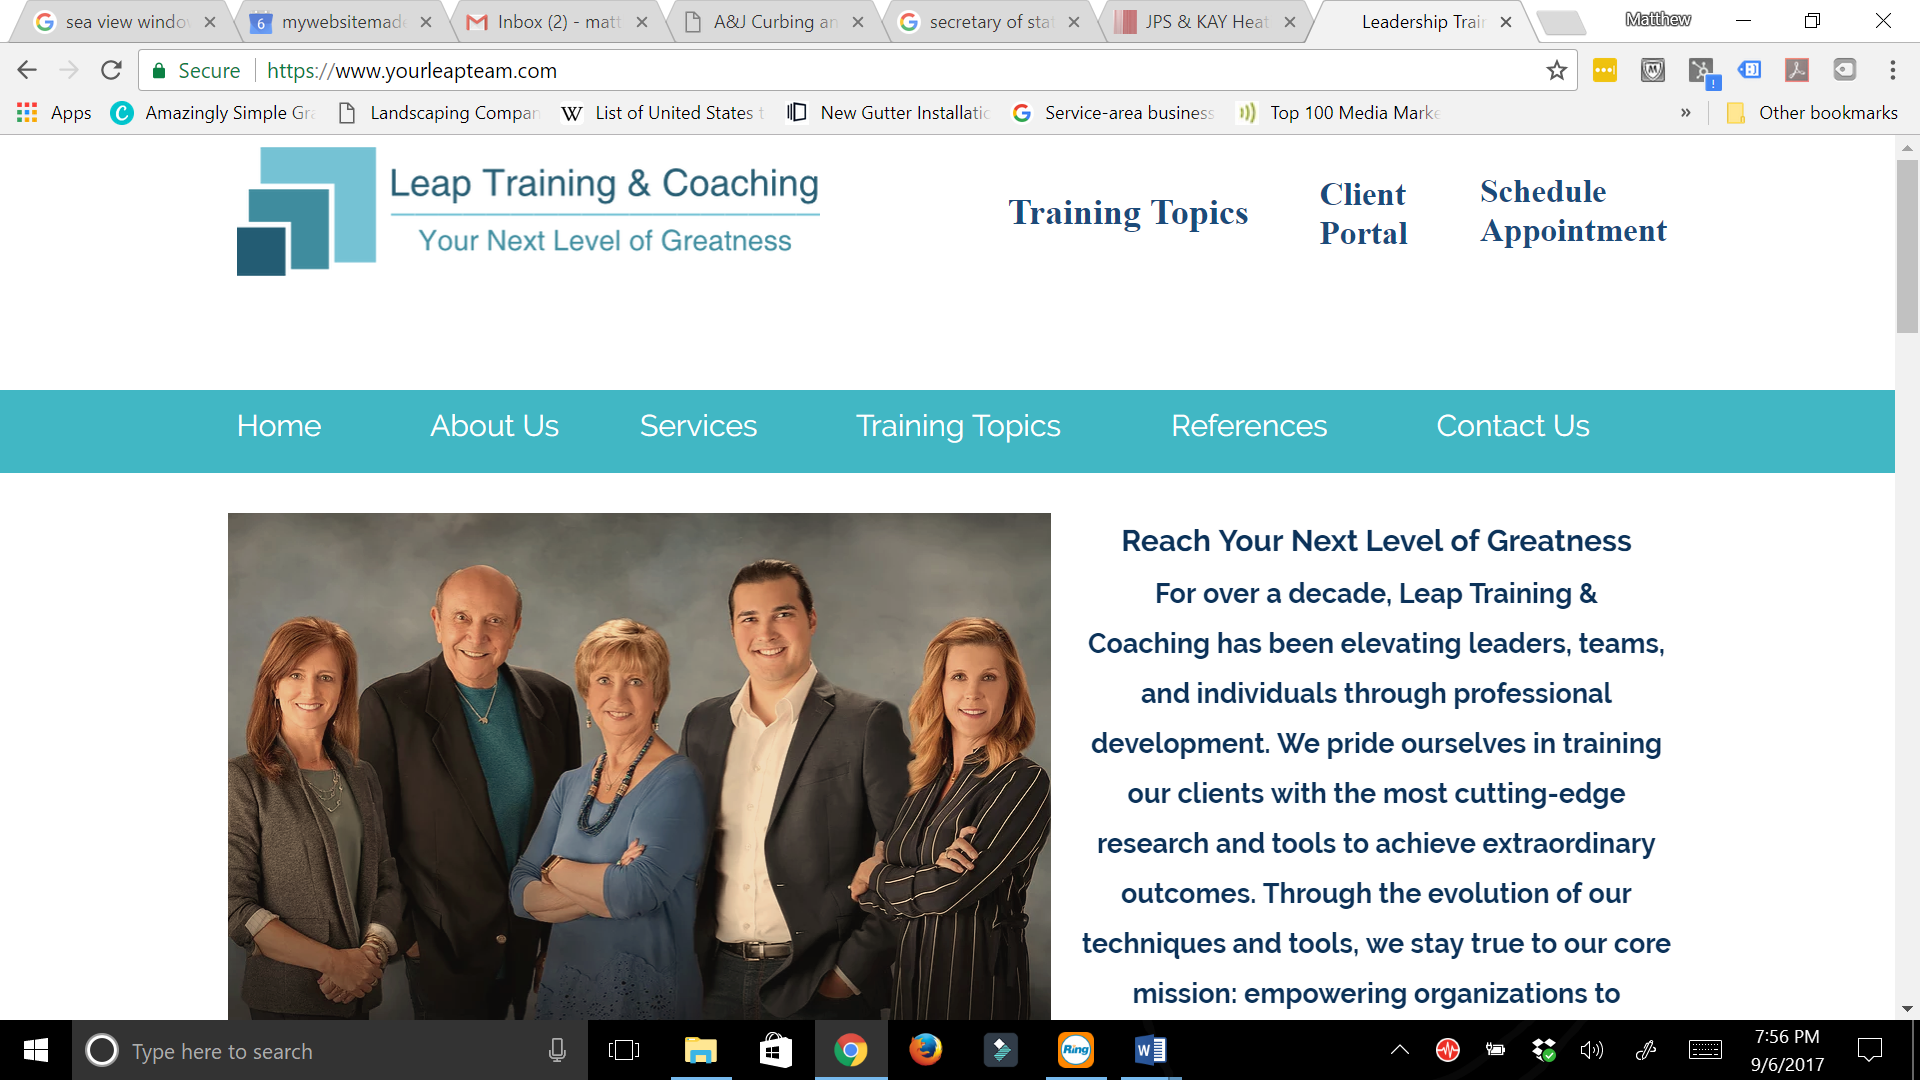 Leap training & coaching